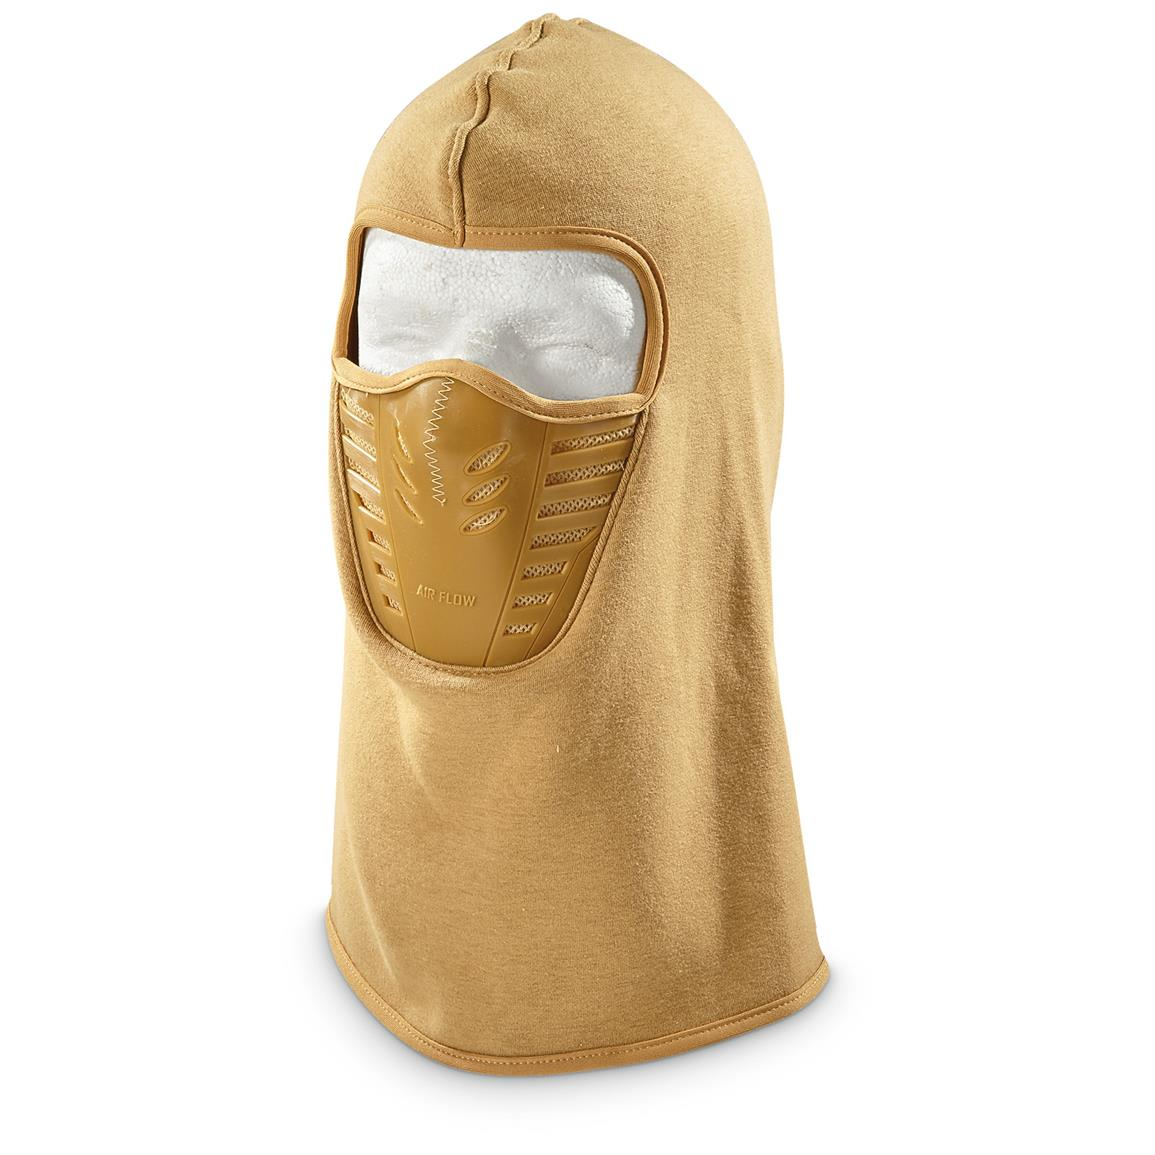 Red Rock Outdoor Gear Tactical Fleece Balaclava, 2 Pack, Coyote Tan